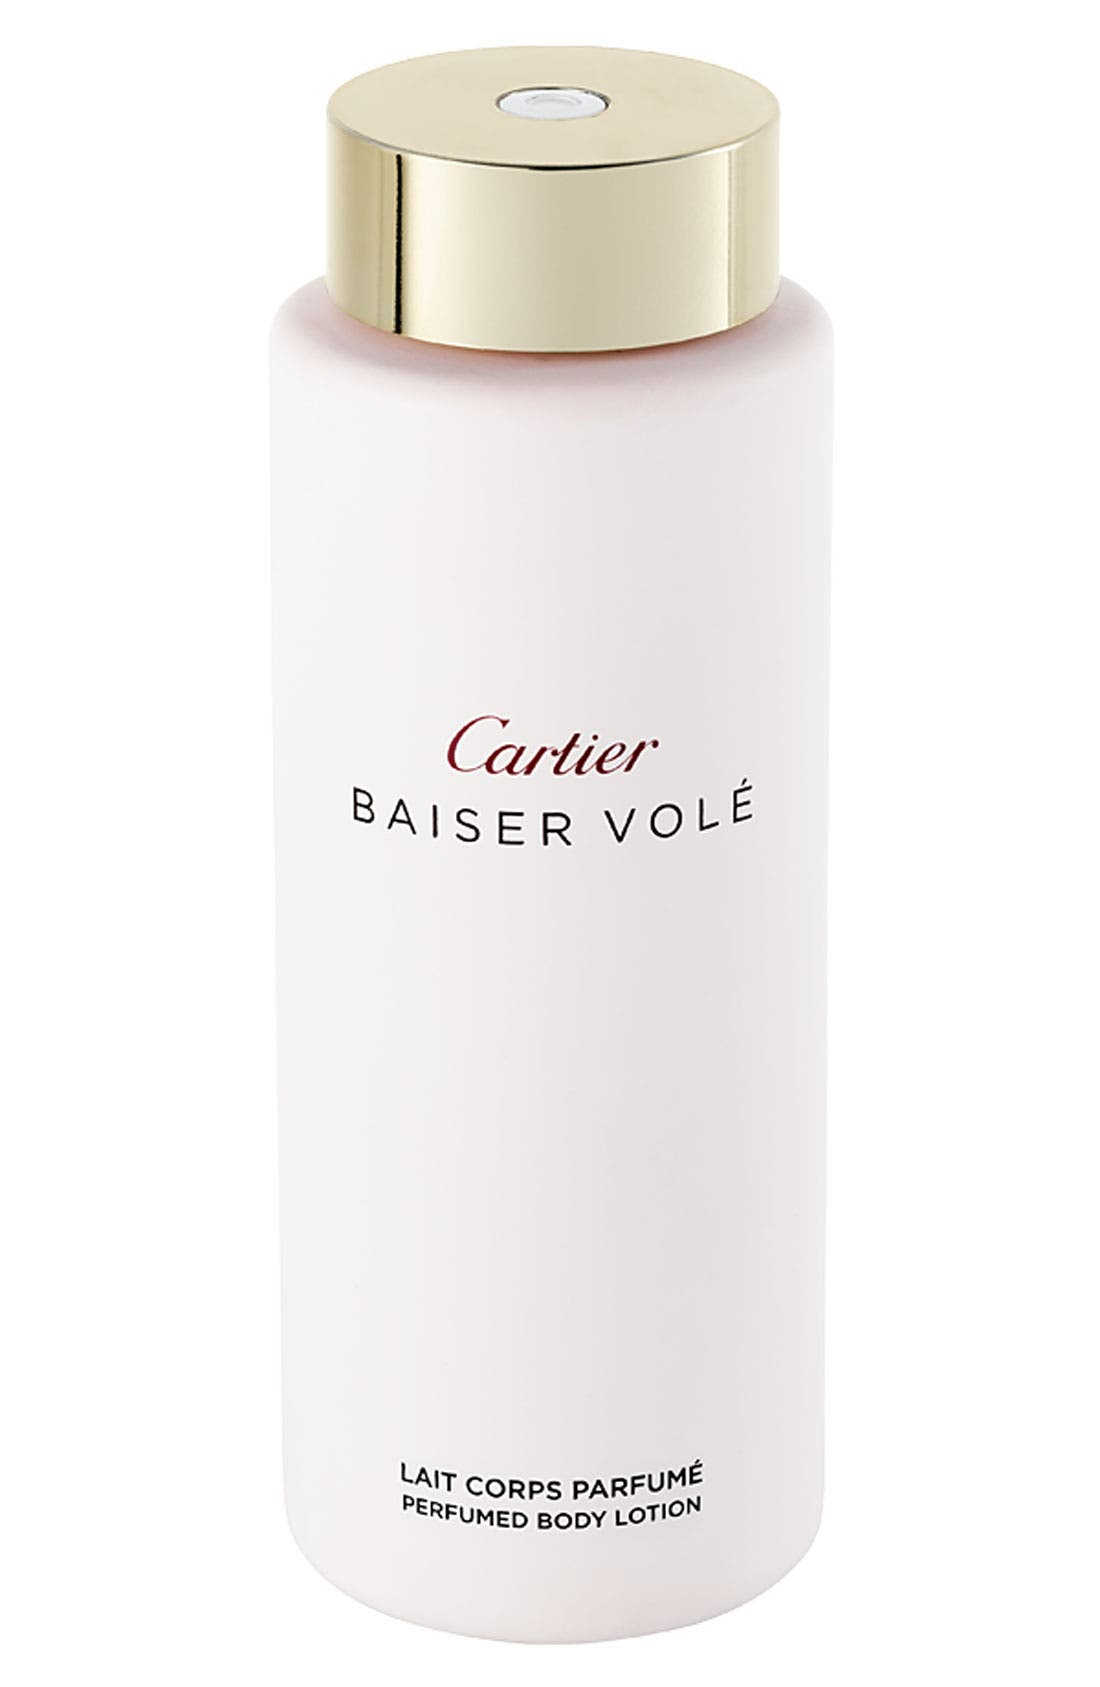 Cartier 'Baiser Volé' Perfumed Body Lotion